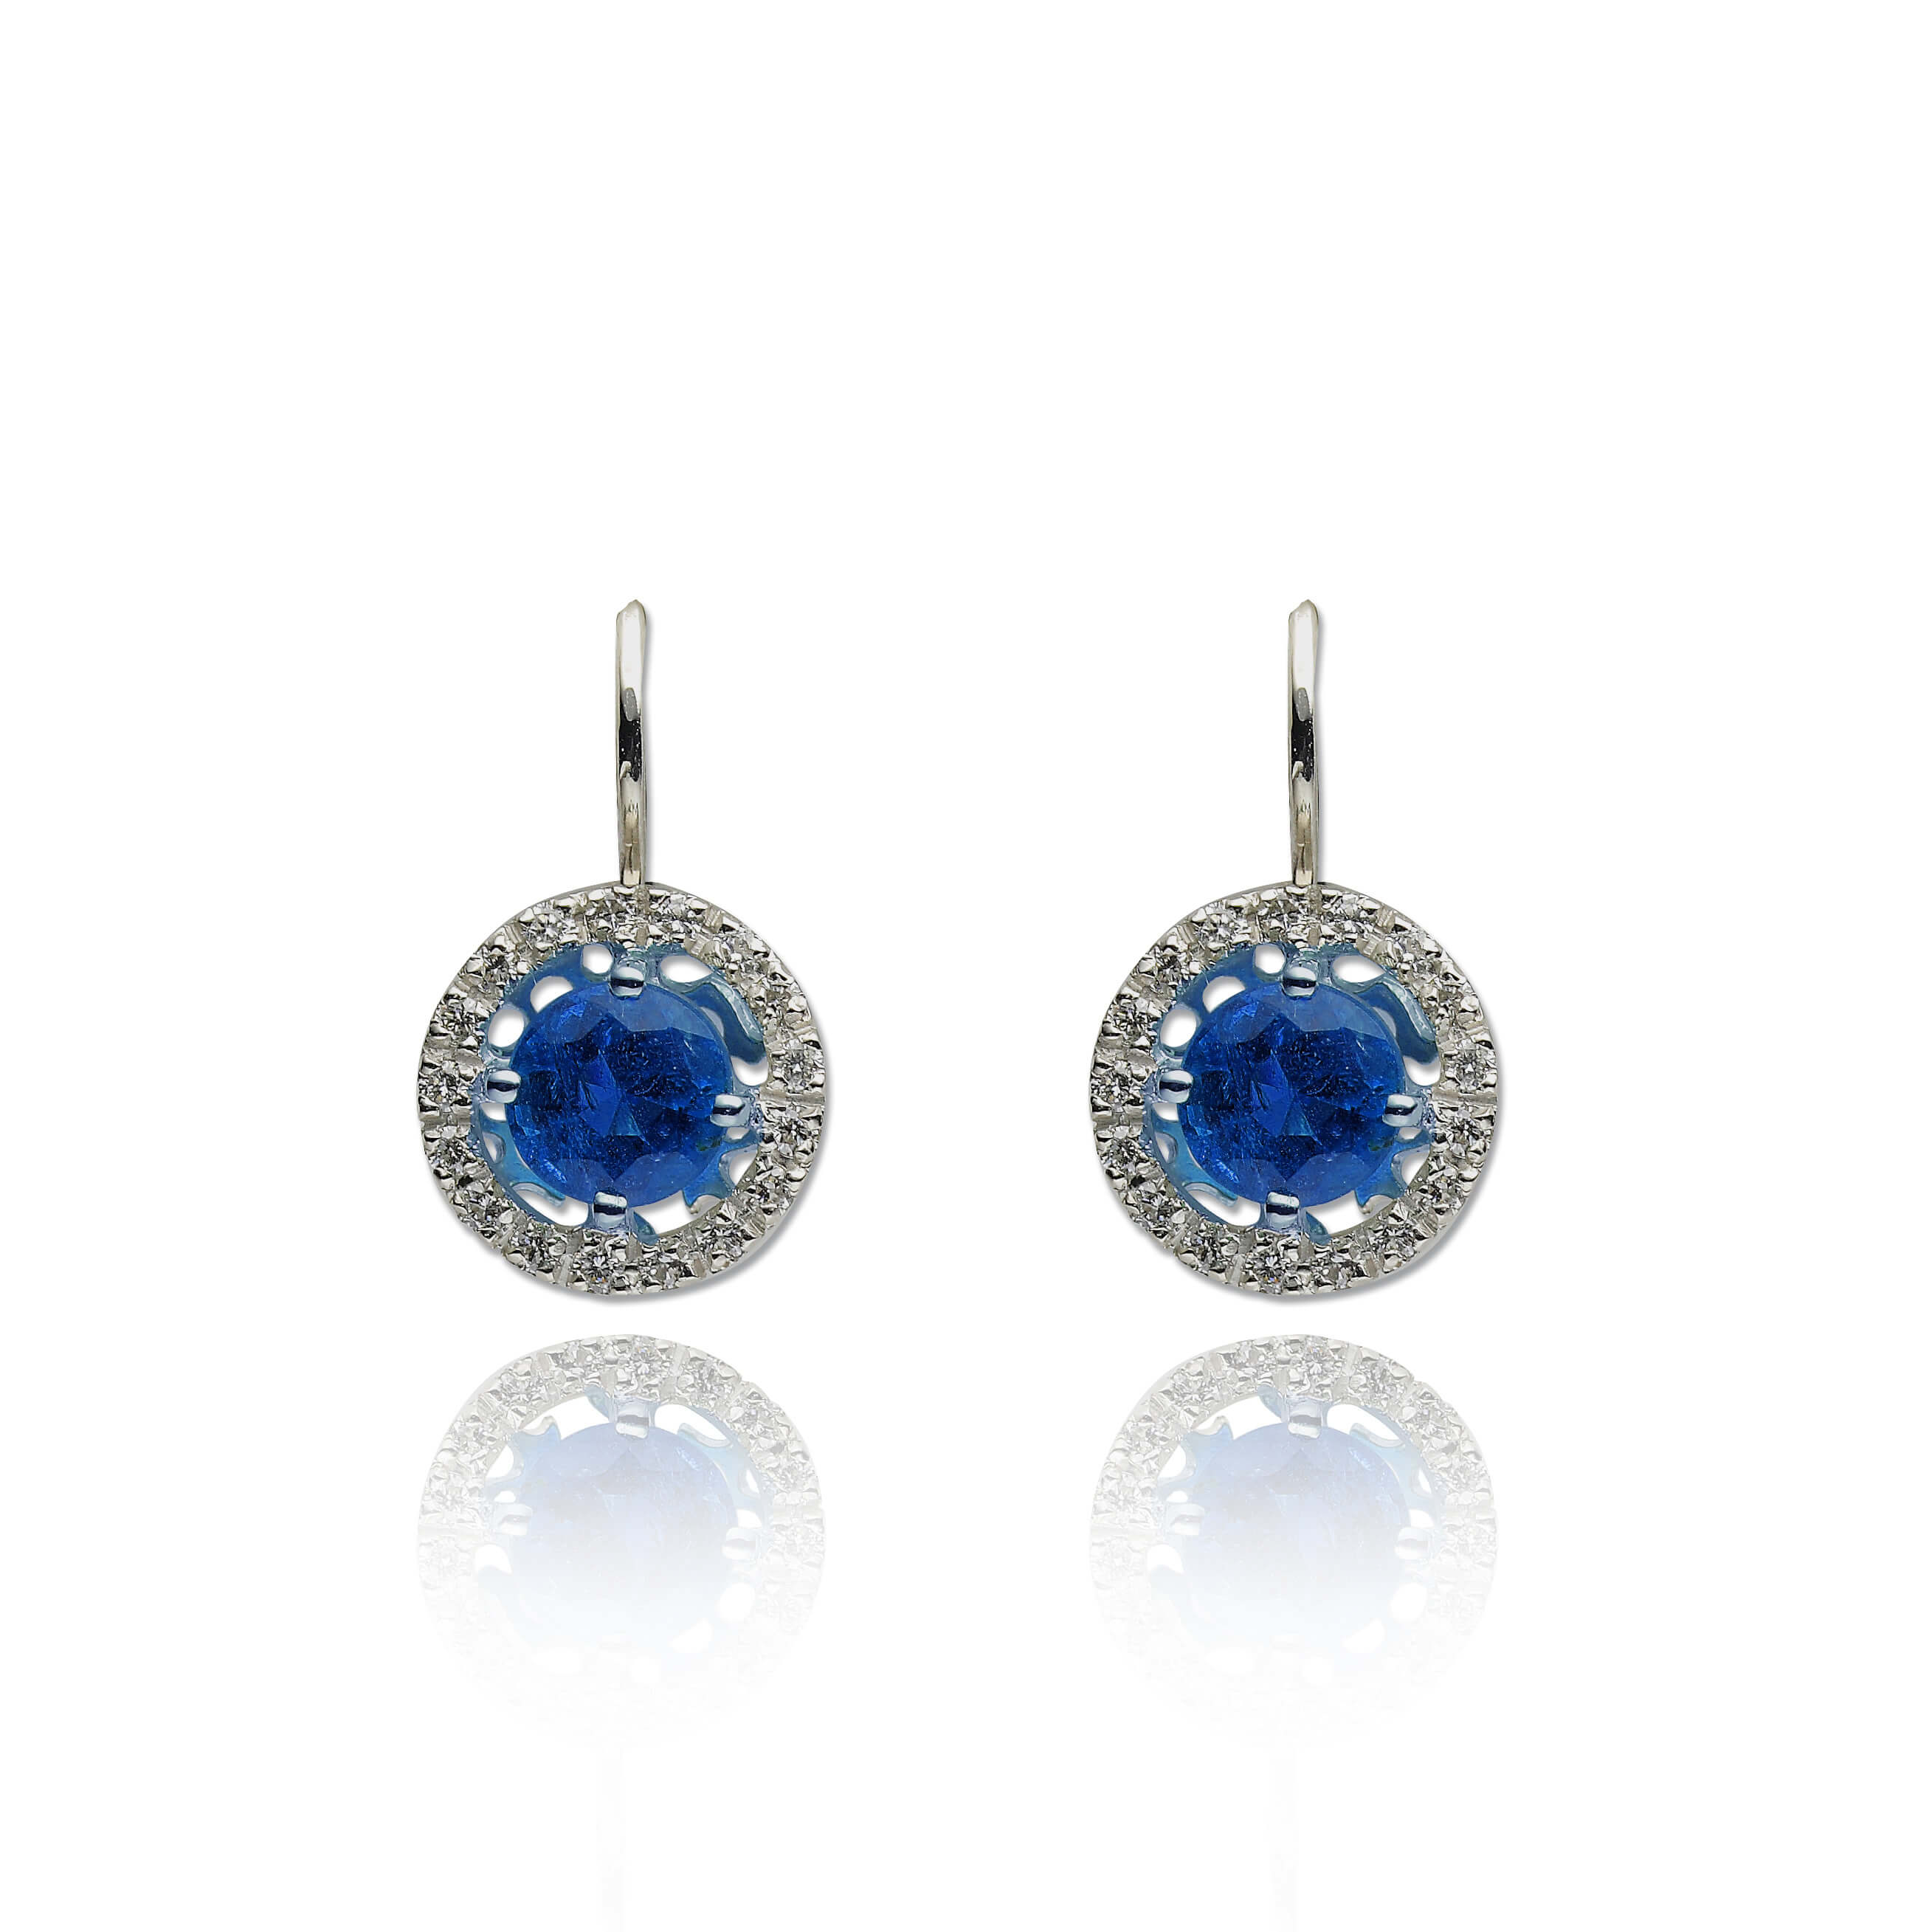 diamant 0,01 ct - 34 x; plavi safir 6 mm - 2 x